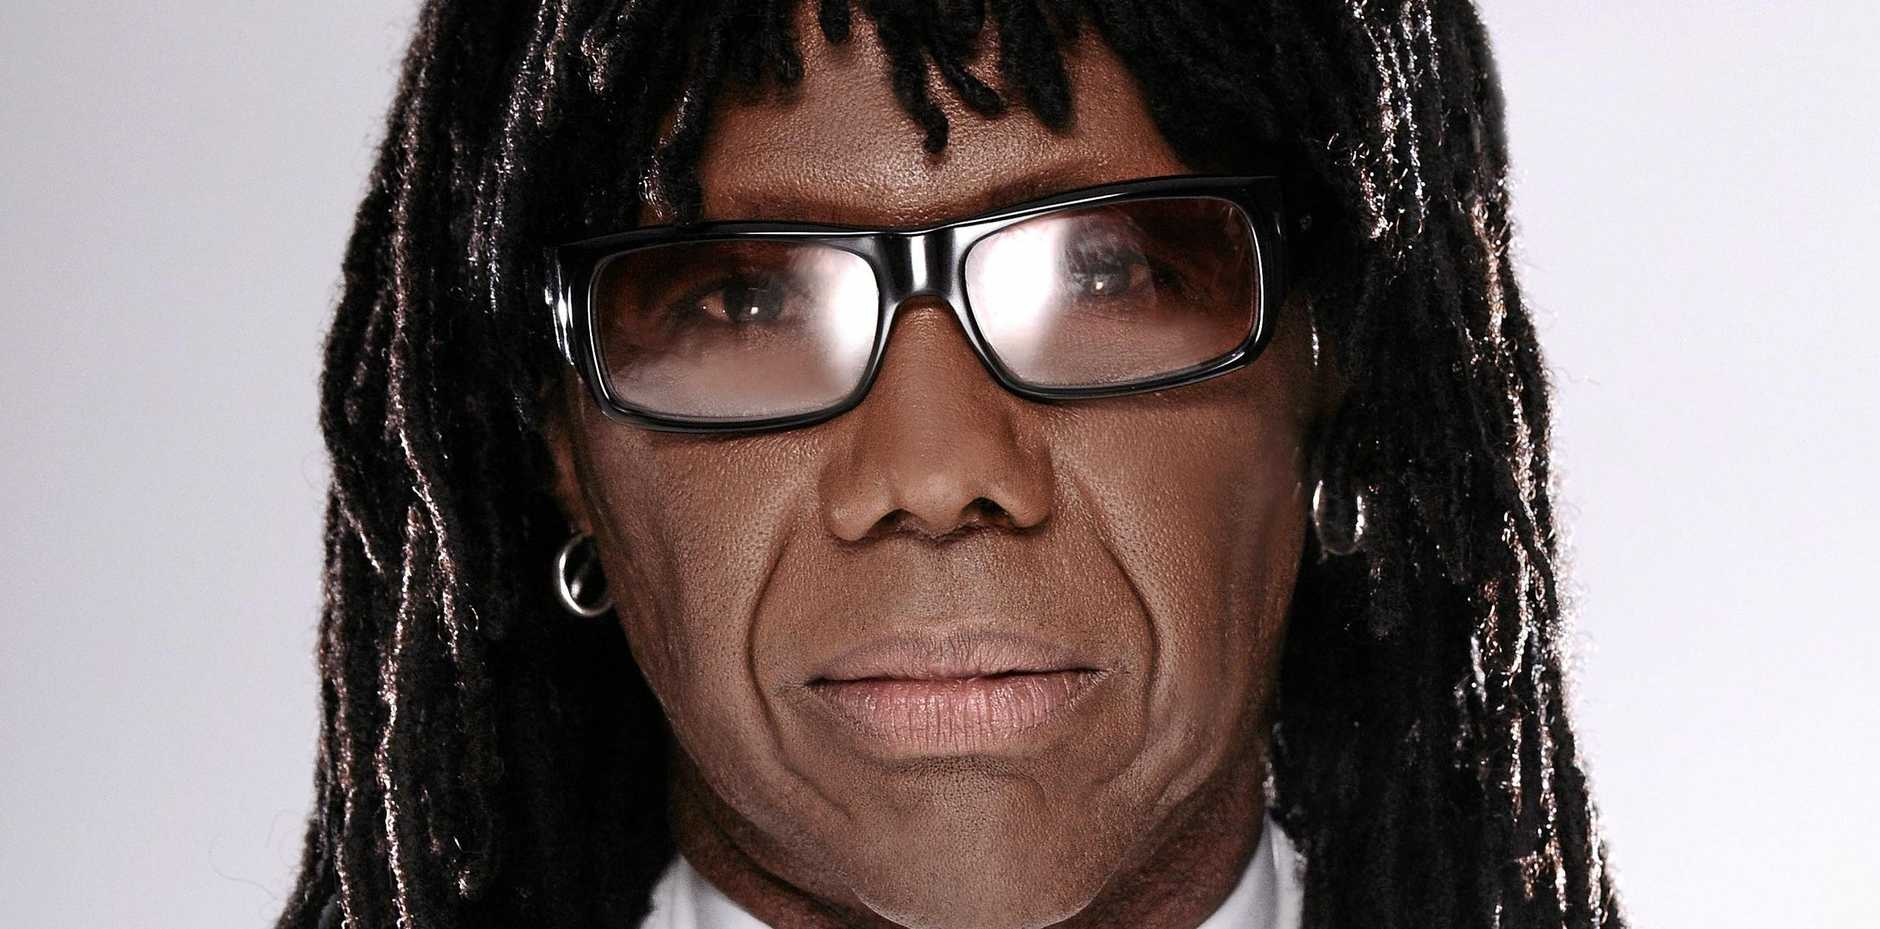 ICON: Nile Gregory Rodgers Jr. is an American record producer, songwriter, musician, composer, arranger and guitarist.